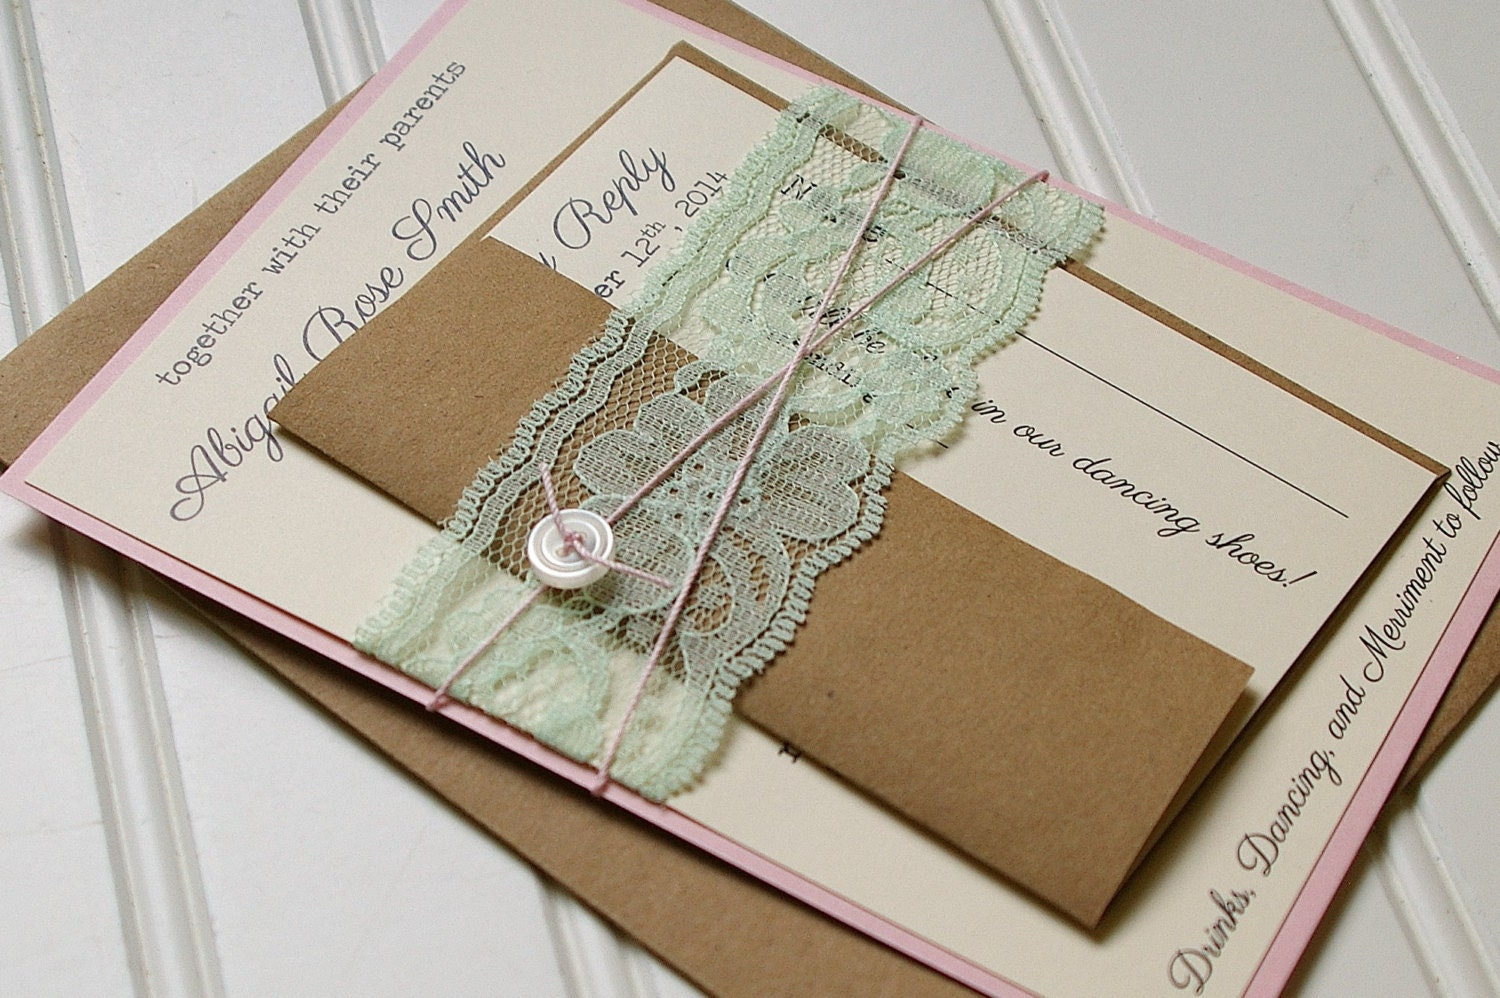 Wedding Invitations Handmade: Rustic Lace Wedding Invitations: Unique Handmade Rustic